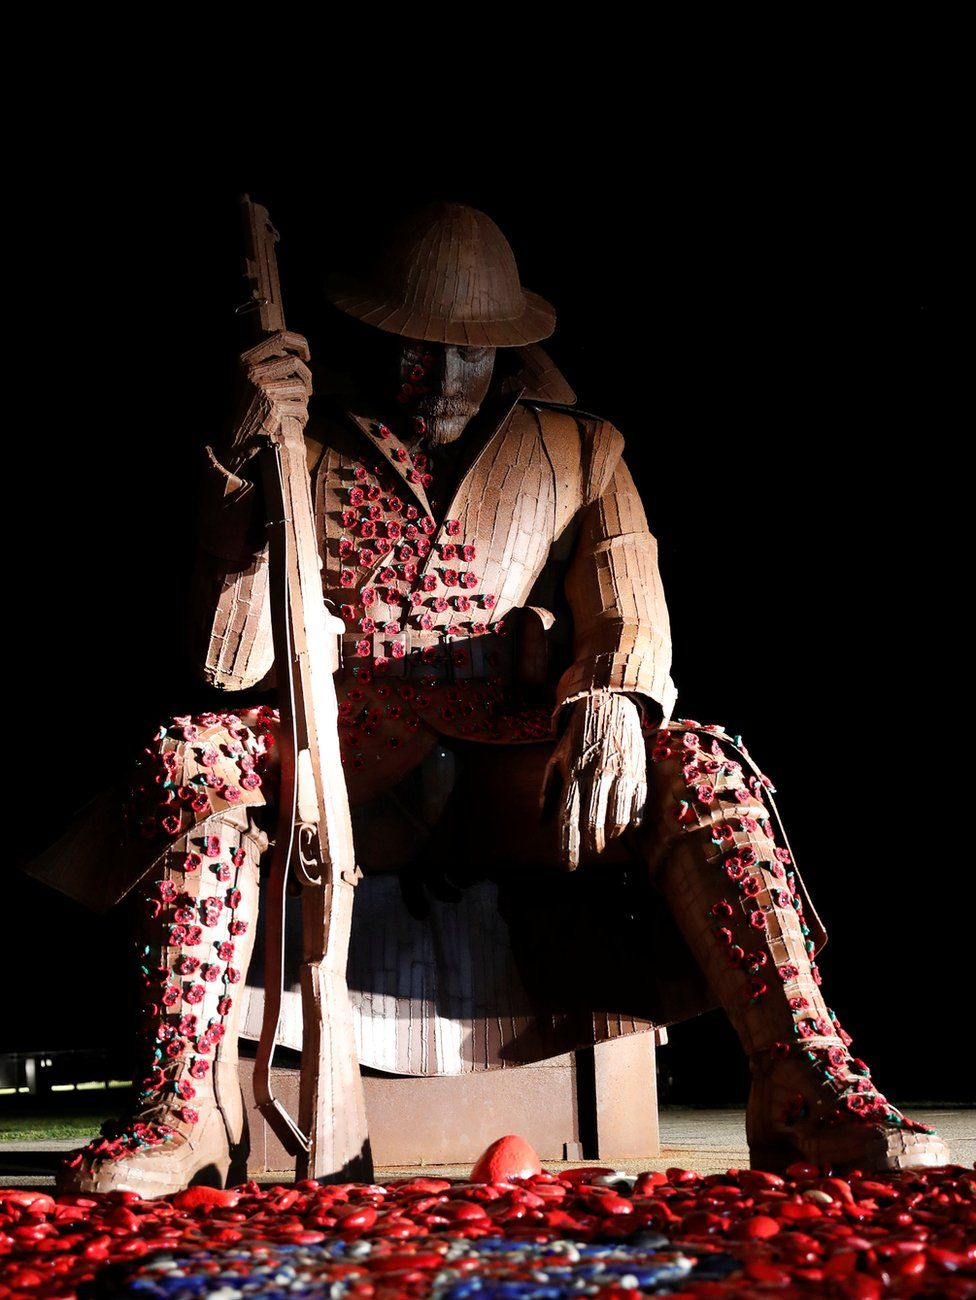 """The historical statue of soldier """"Tommy"""" on Seaham seafront in County Durham is decorated with magnetic poppies"""